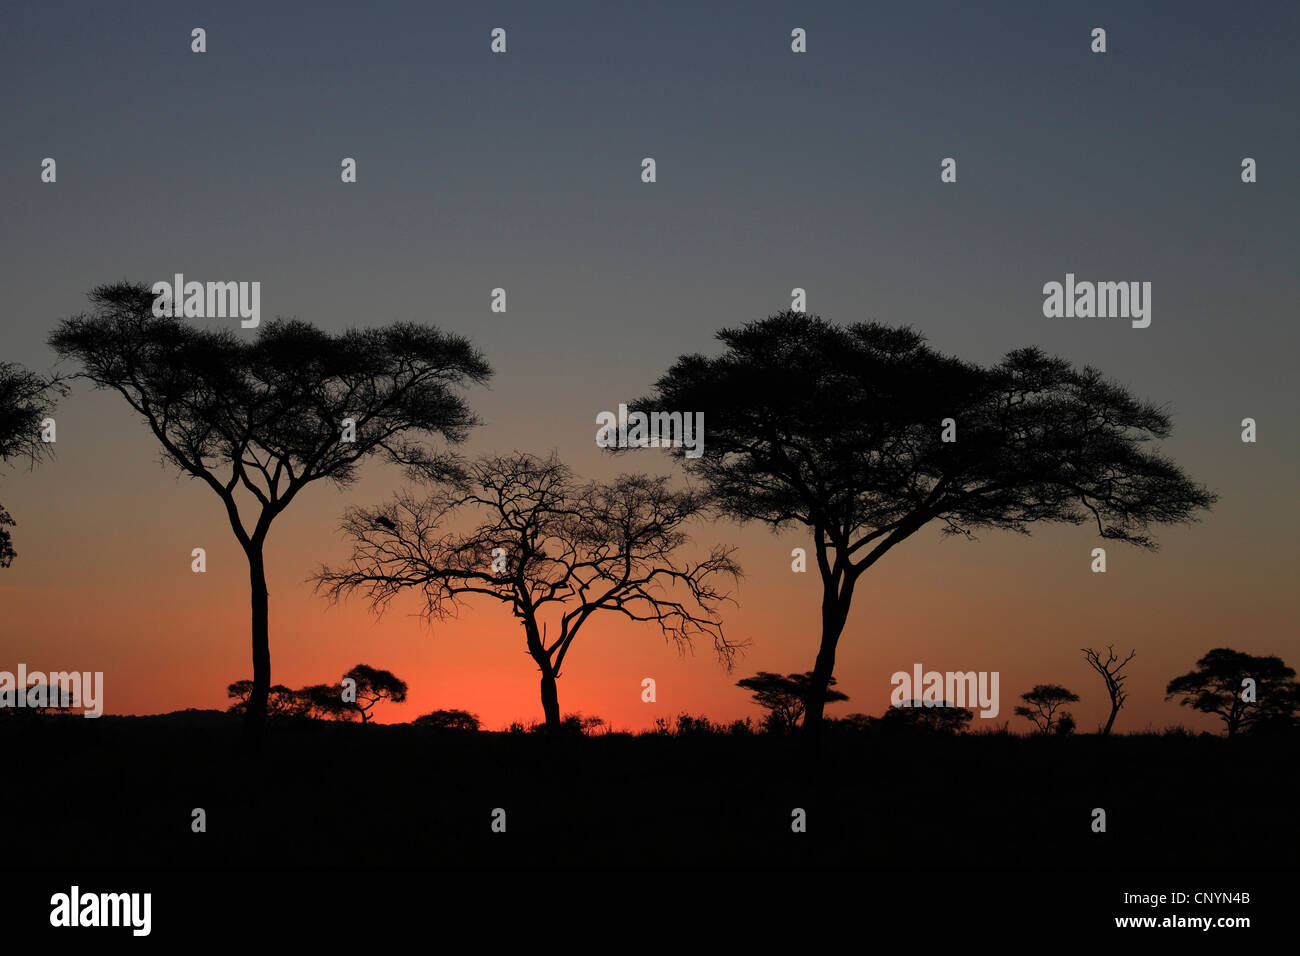 trees in the sunset, Tanzania, Tarangire National Park, Serengeti - Stock Image